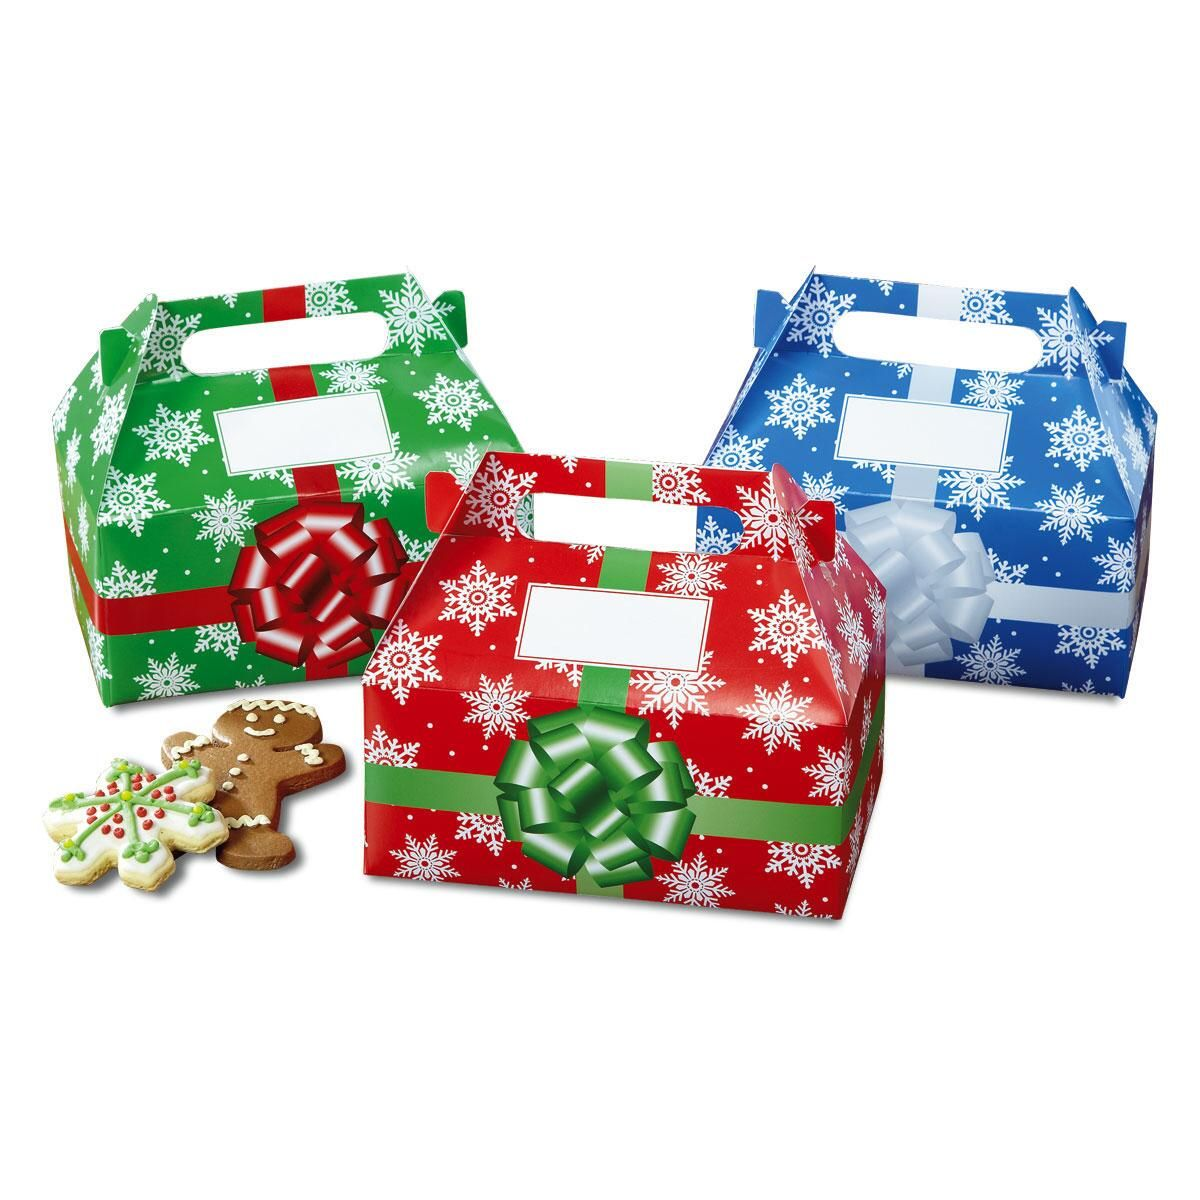 Put gifts for your troop in these adorable treat boxes-no wrapping necessary!